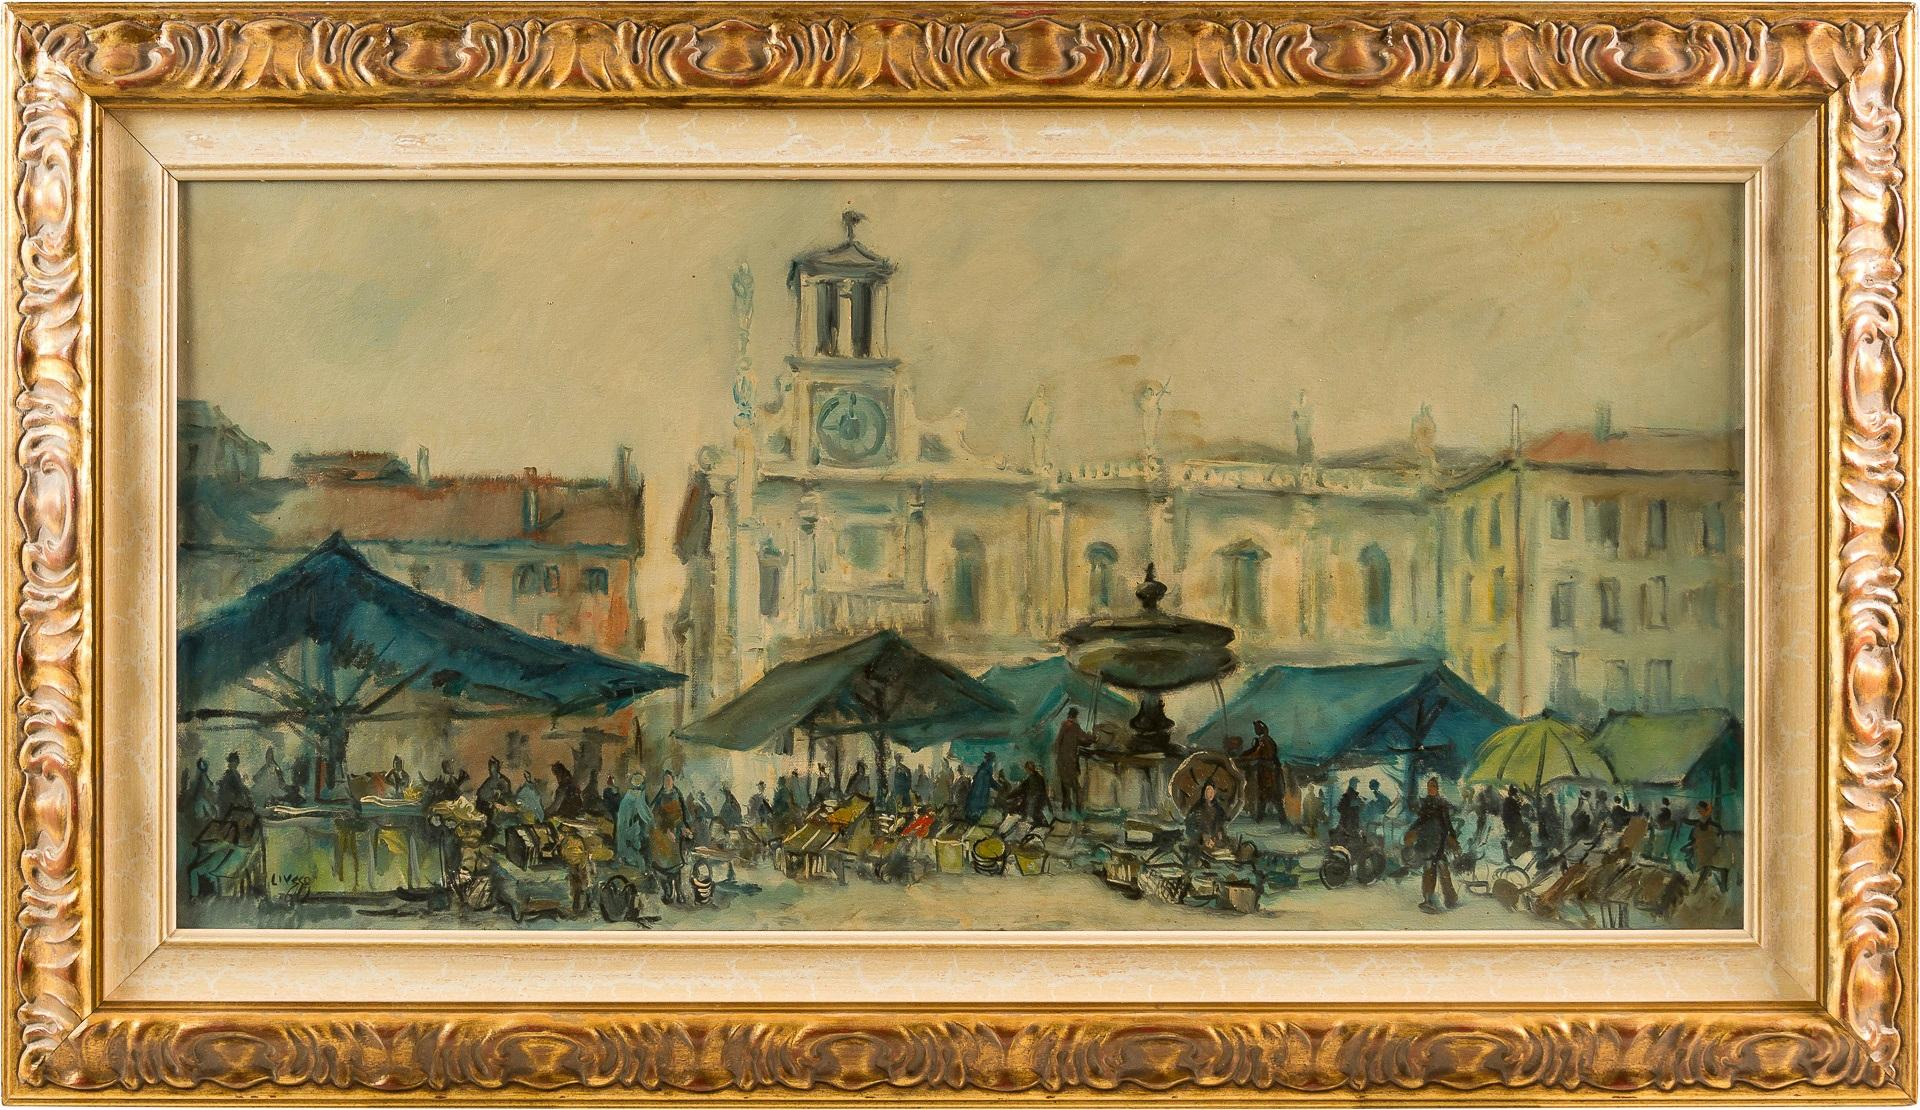 20th century Italian landscape painting - View of Udine - Oil on canvas Italy